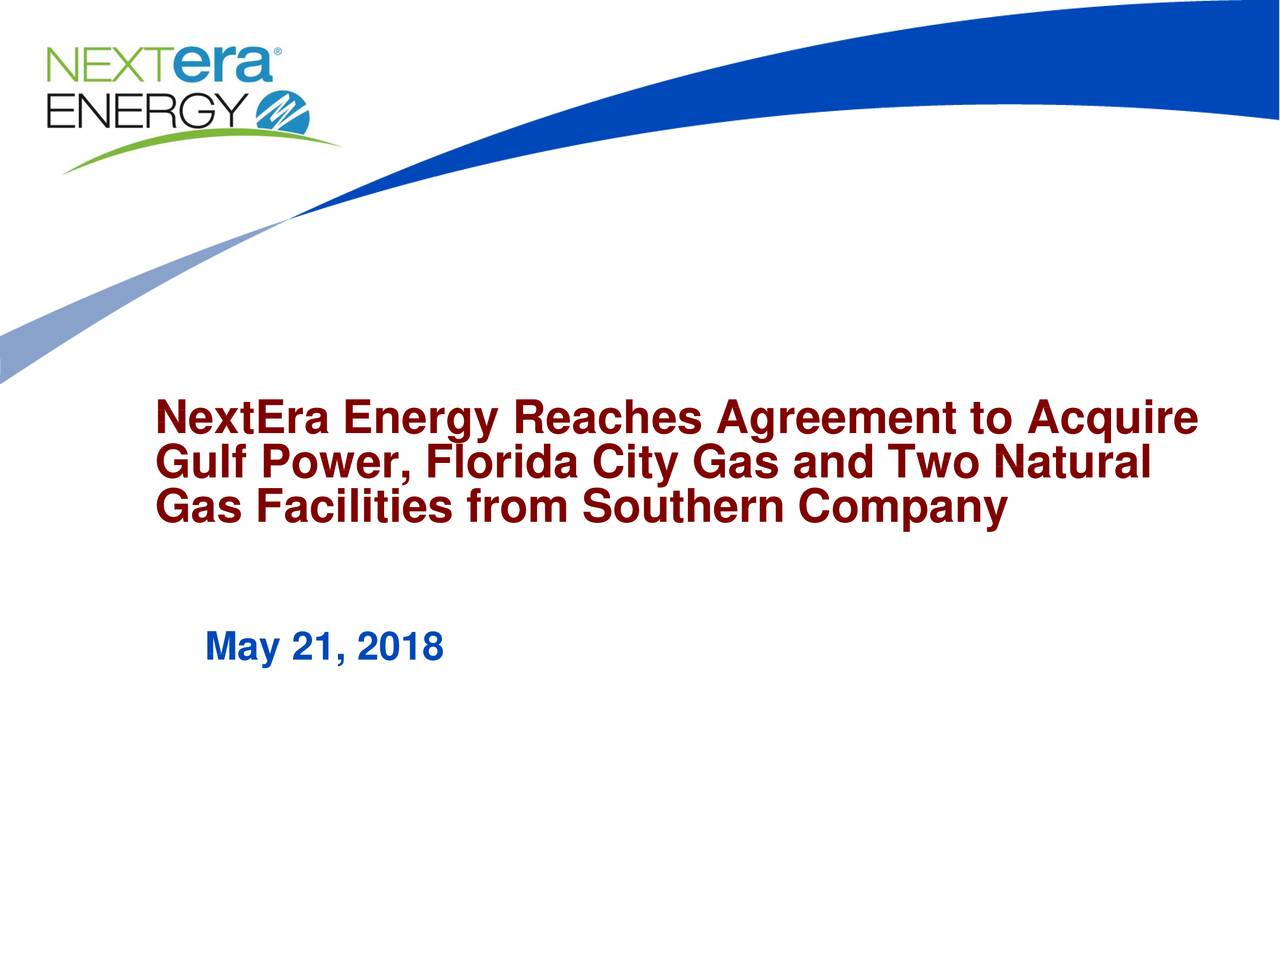 Nextera Energy Nee To Acquire Gulf Power Florida City Gas And